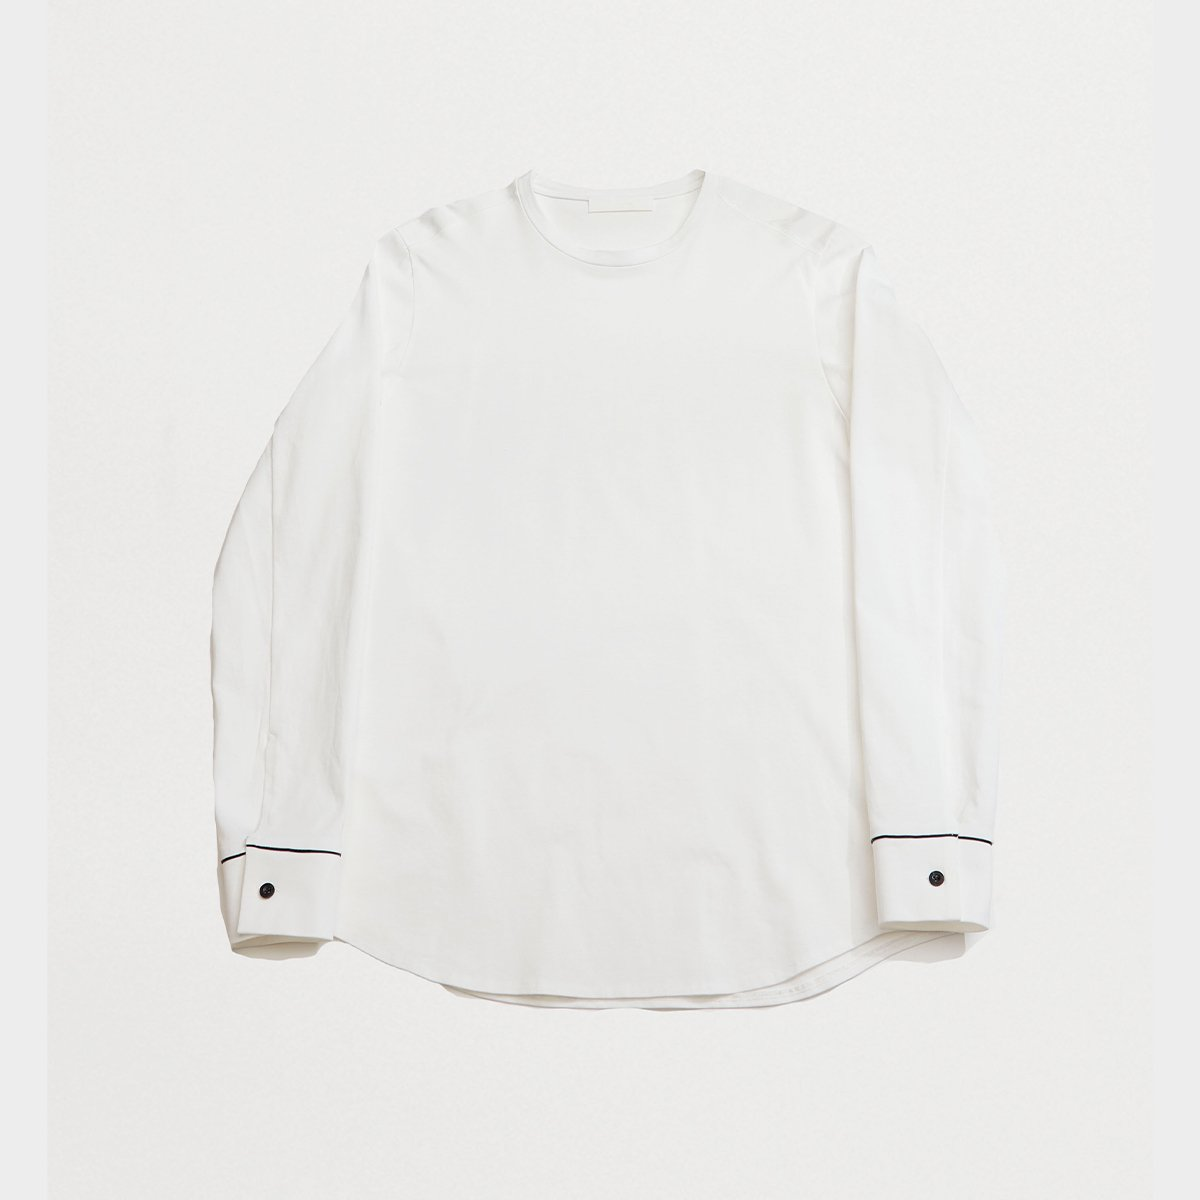 <img class='new_mark_img1' src='https://img.shop-pro.jp/img/new/icons5.gif' style='border:none;display:inline;margin:0px;padding:0px;width:auto;' />LONG-SLEEVED T-SHIRT / WHITE